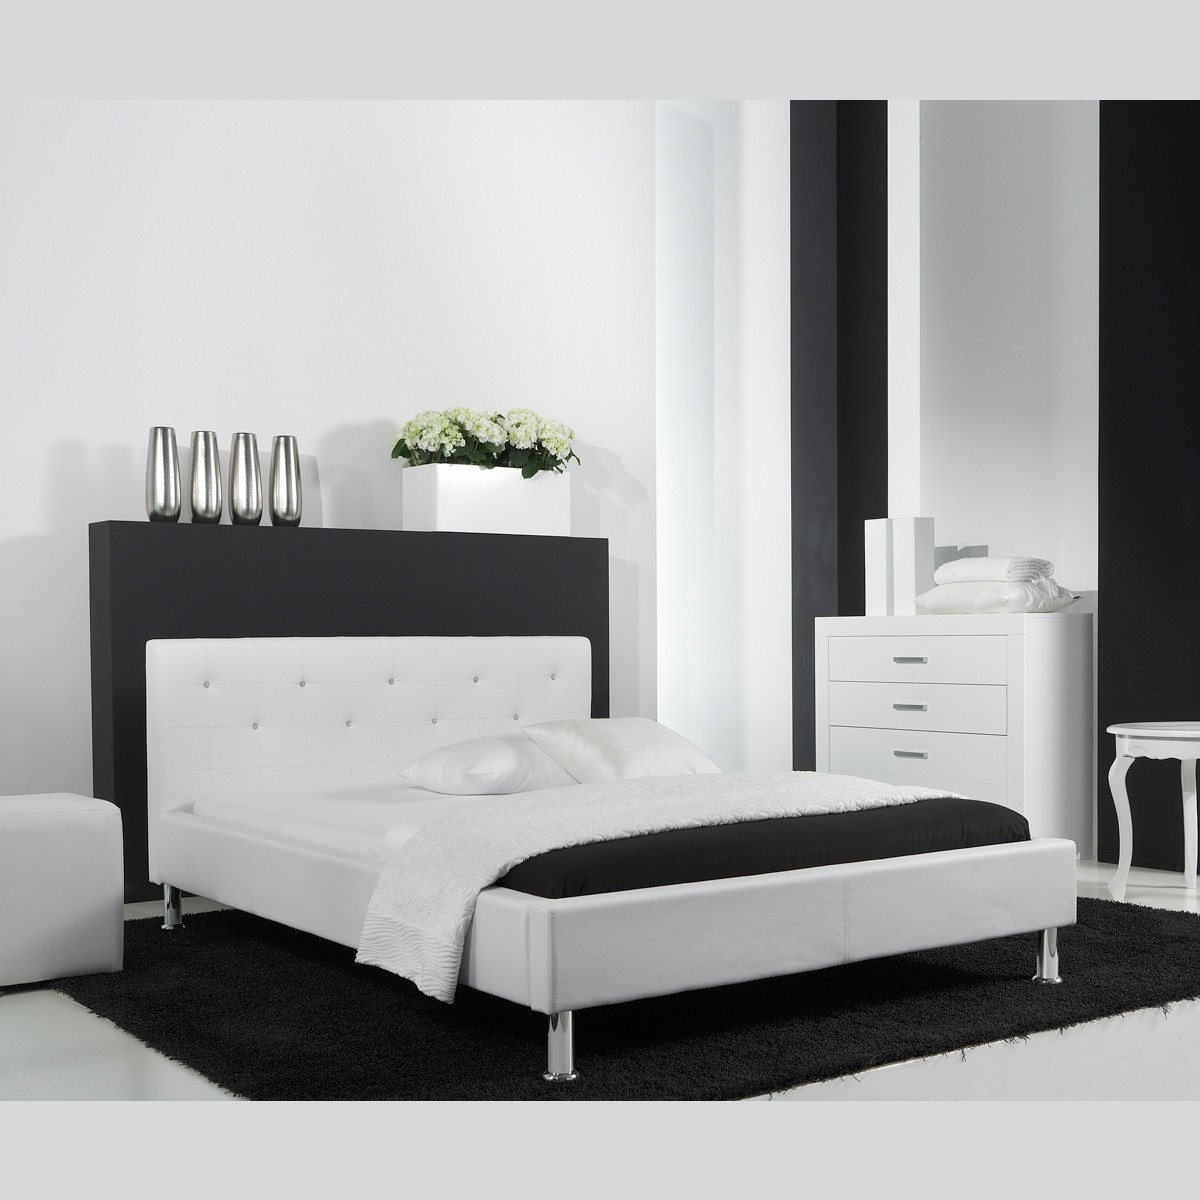 140x200 bett wei best bett with 140x200 bett wei trendy. Black Bedroom Furniture Sets. Home Design Ideas